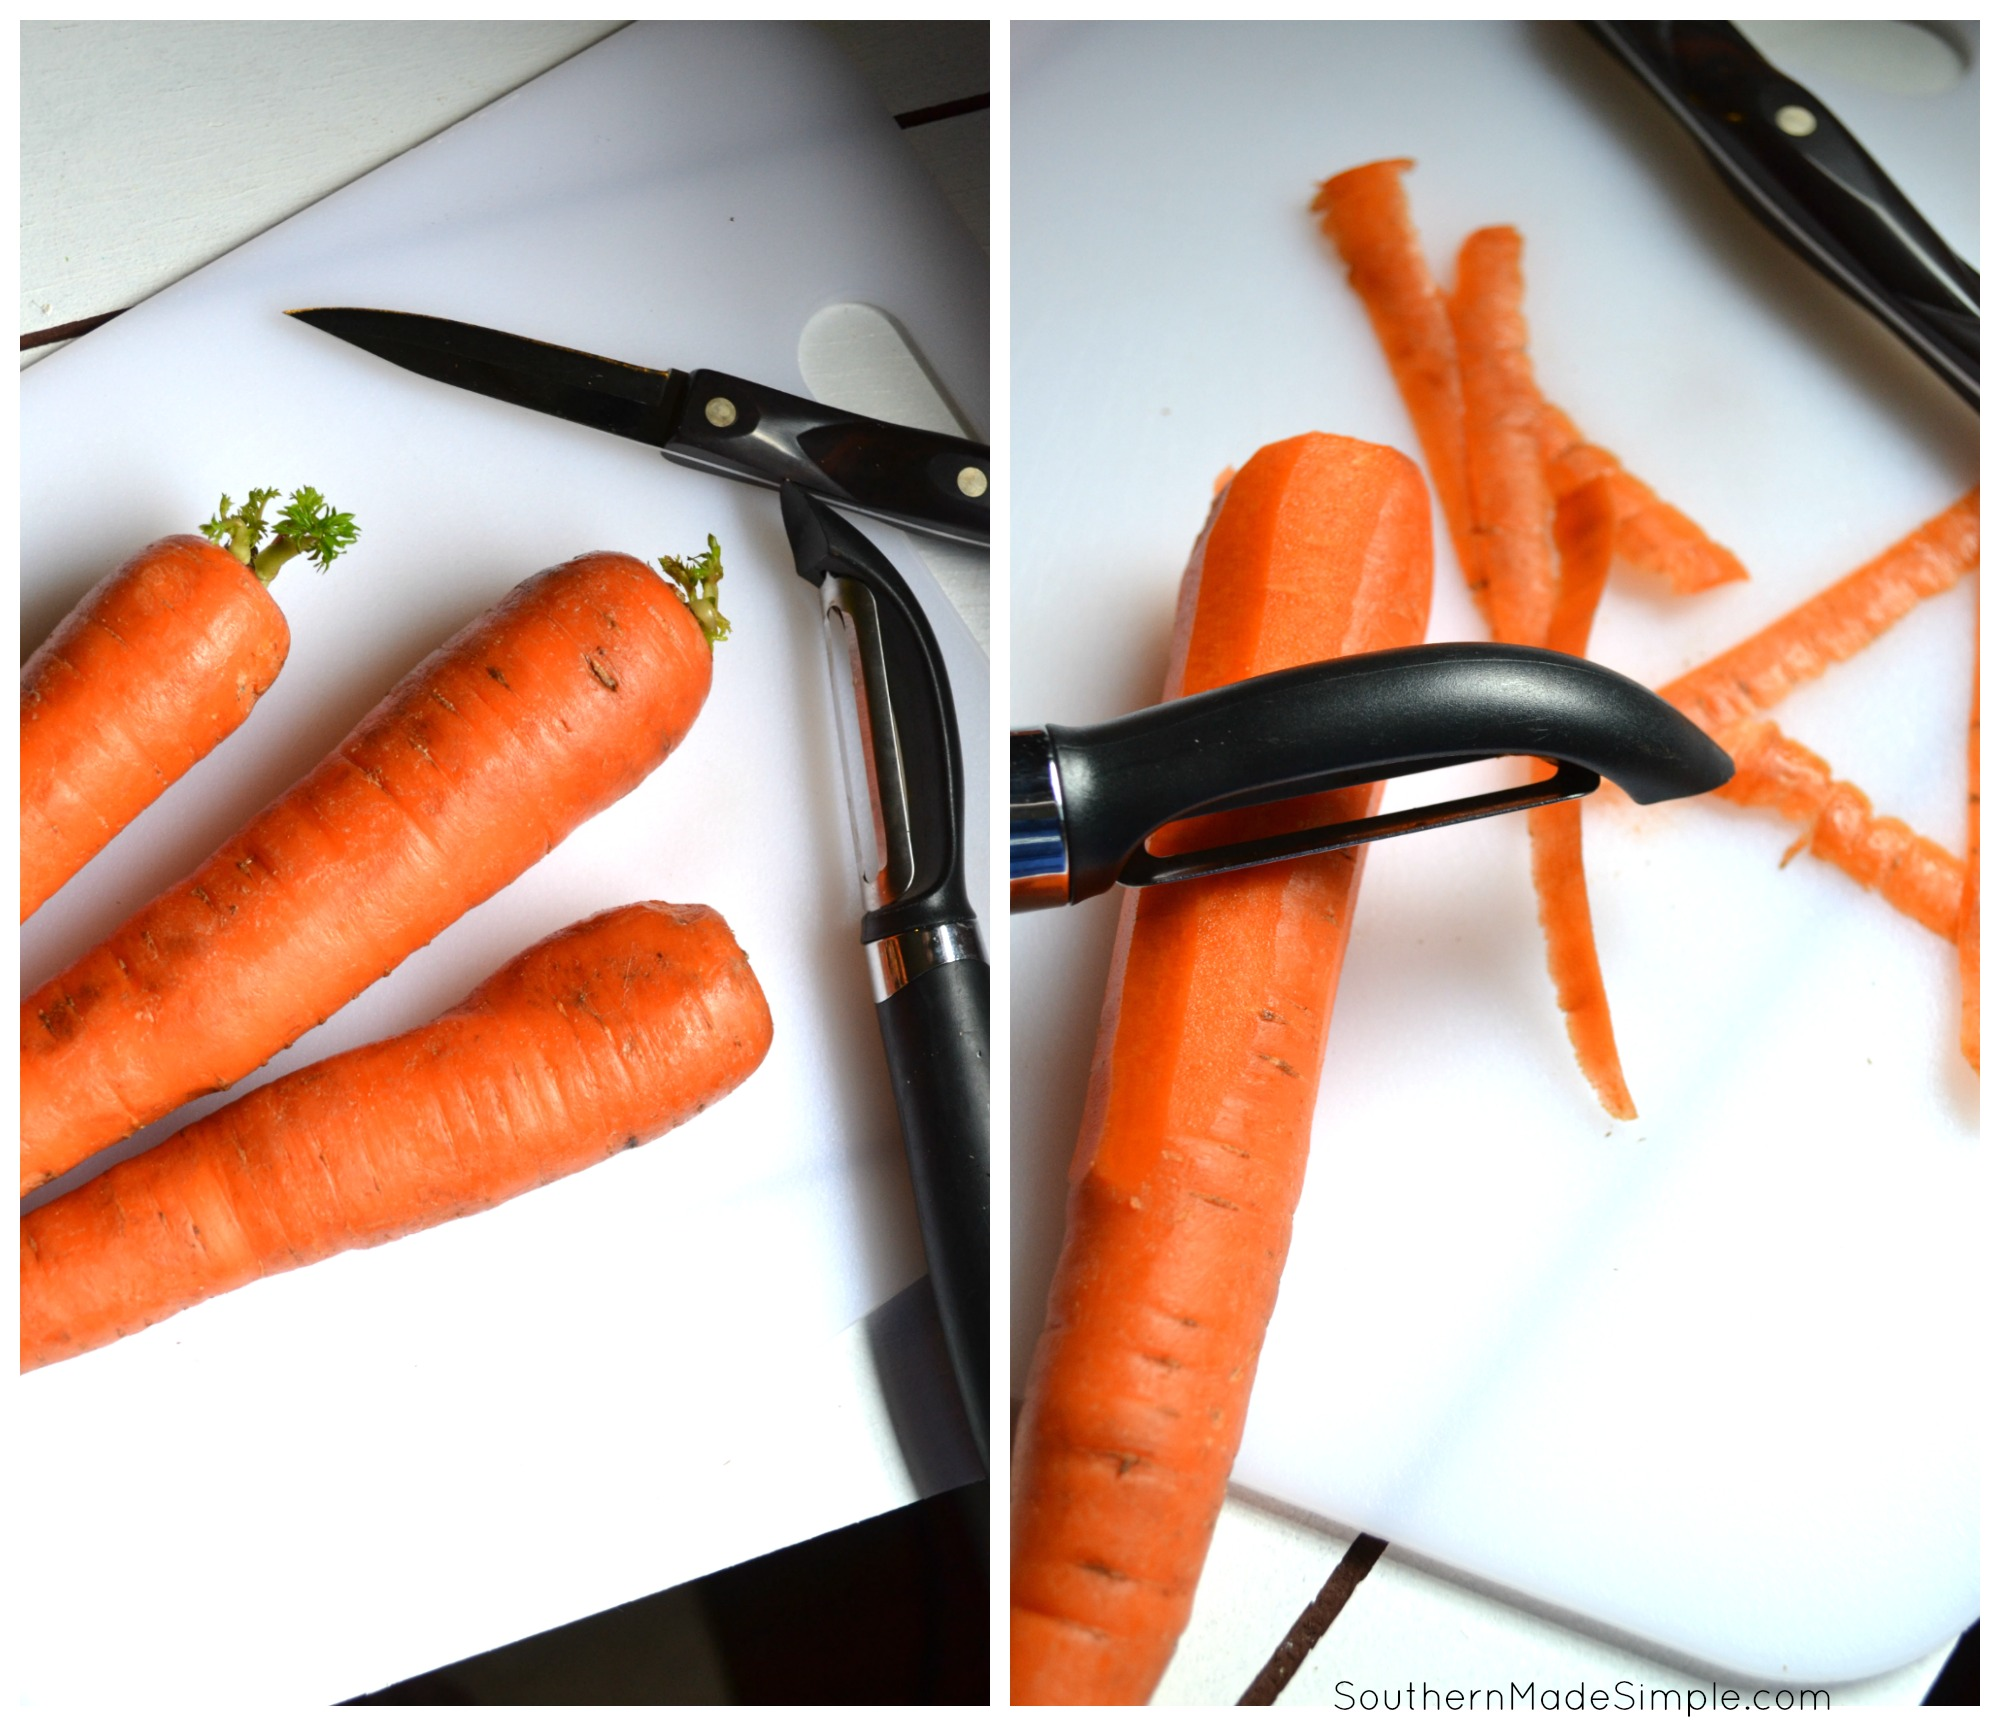 A simple step by step tutorial on how to freeze carrots